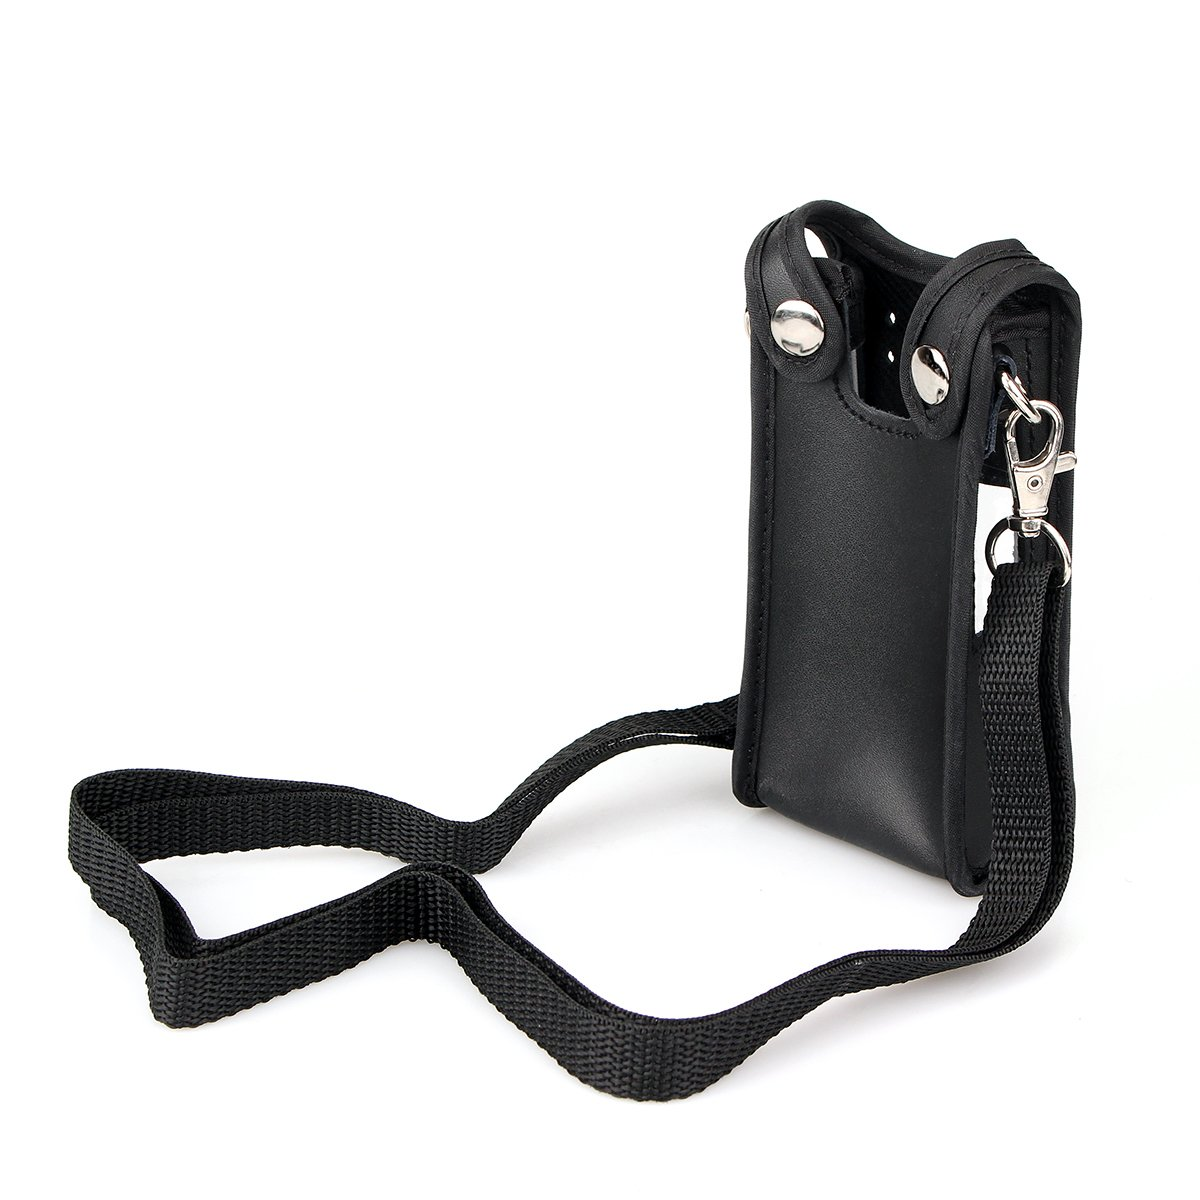 Ailunce Two-way Radio Case Leather Case Carrying Holder Holster for